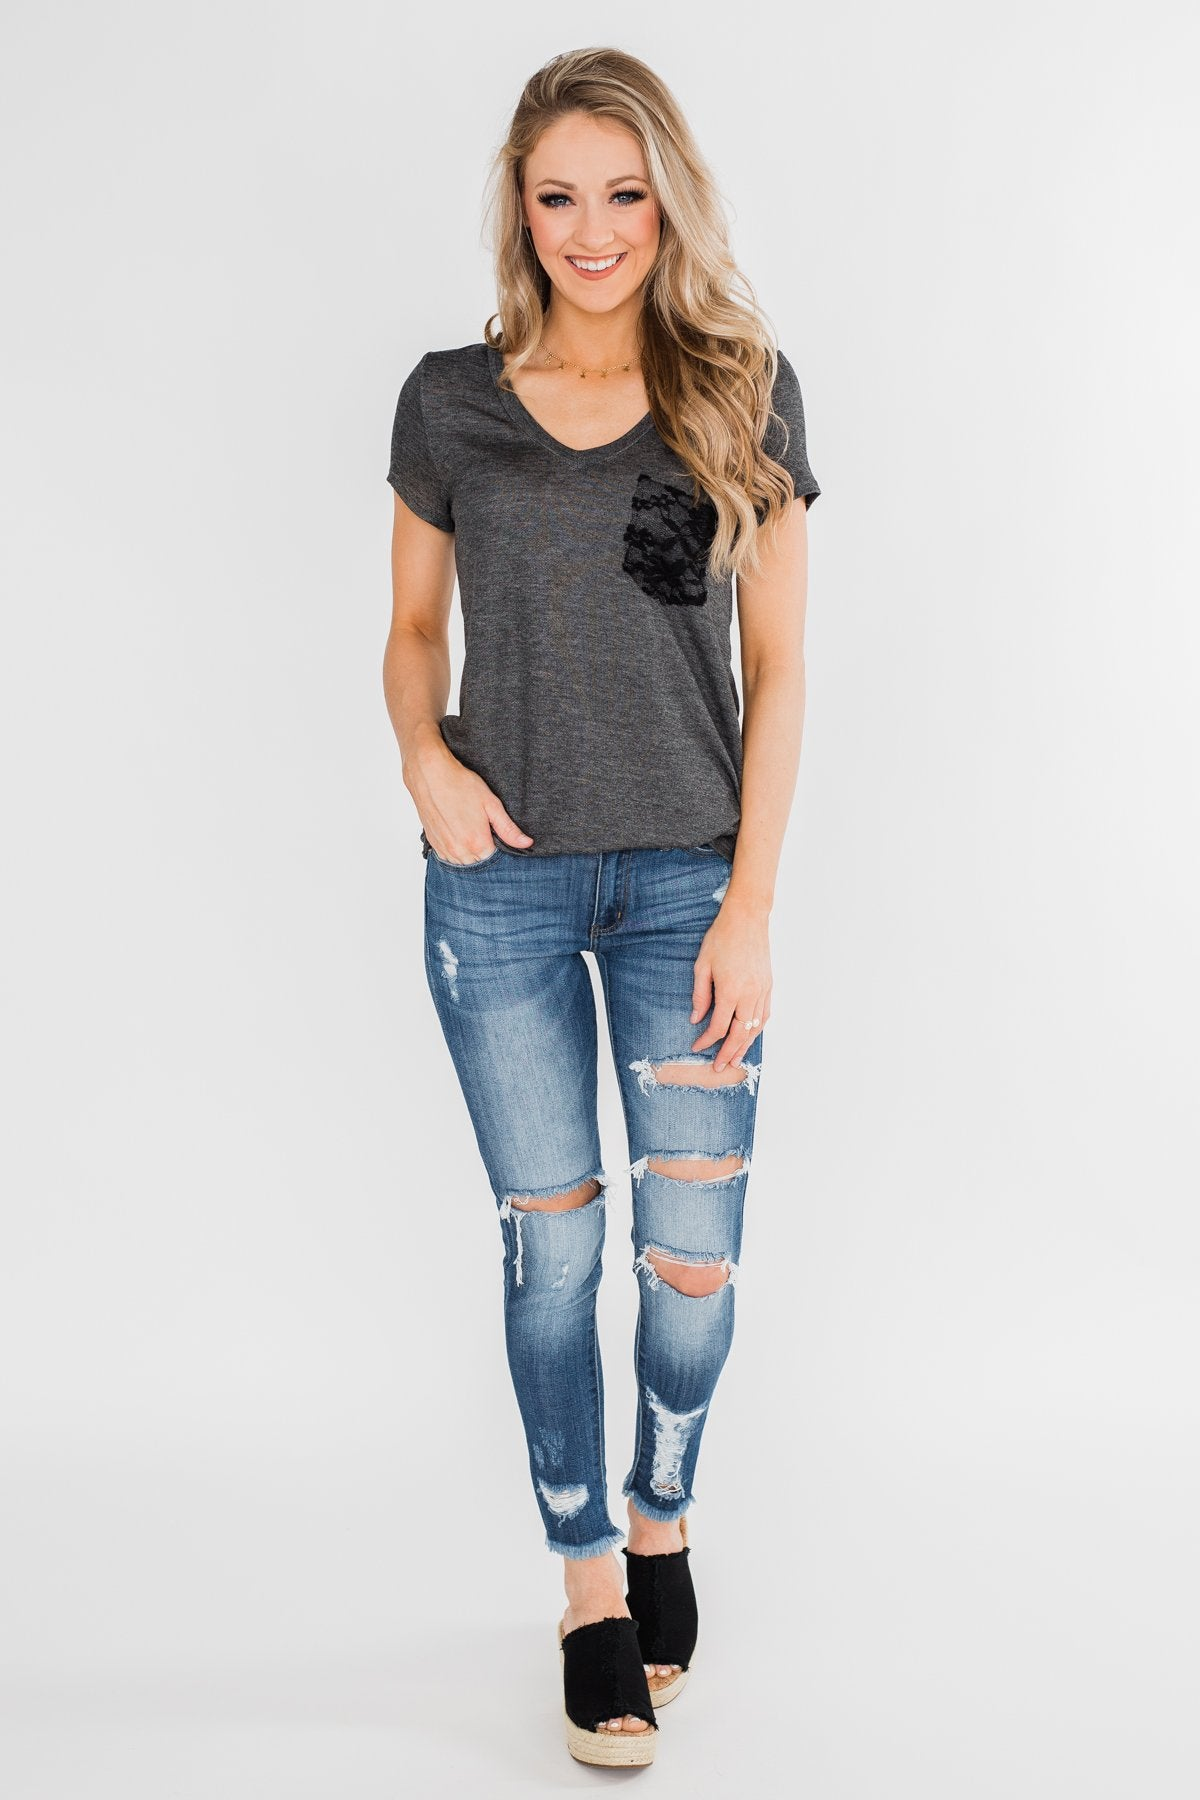 Torn Up in Lace Pocket Top- Black & Charcoal